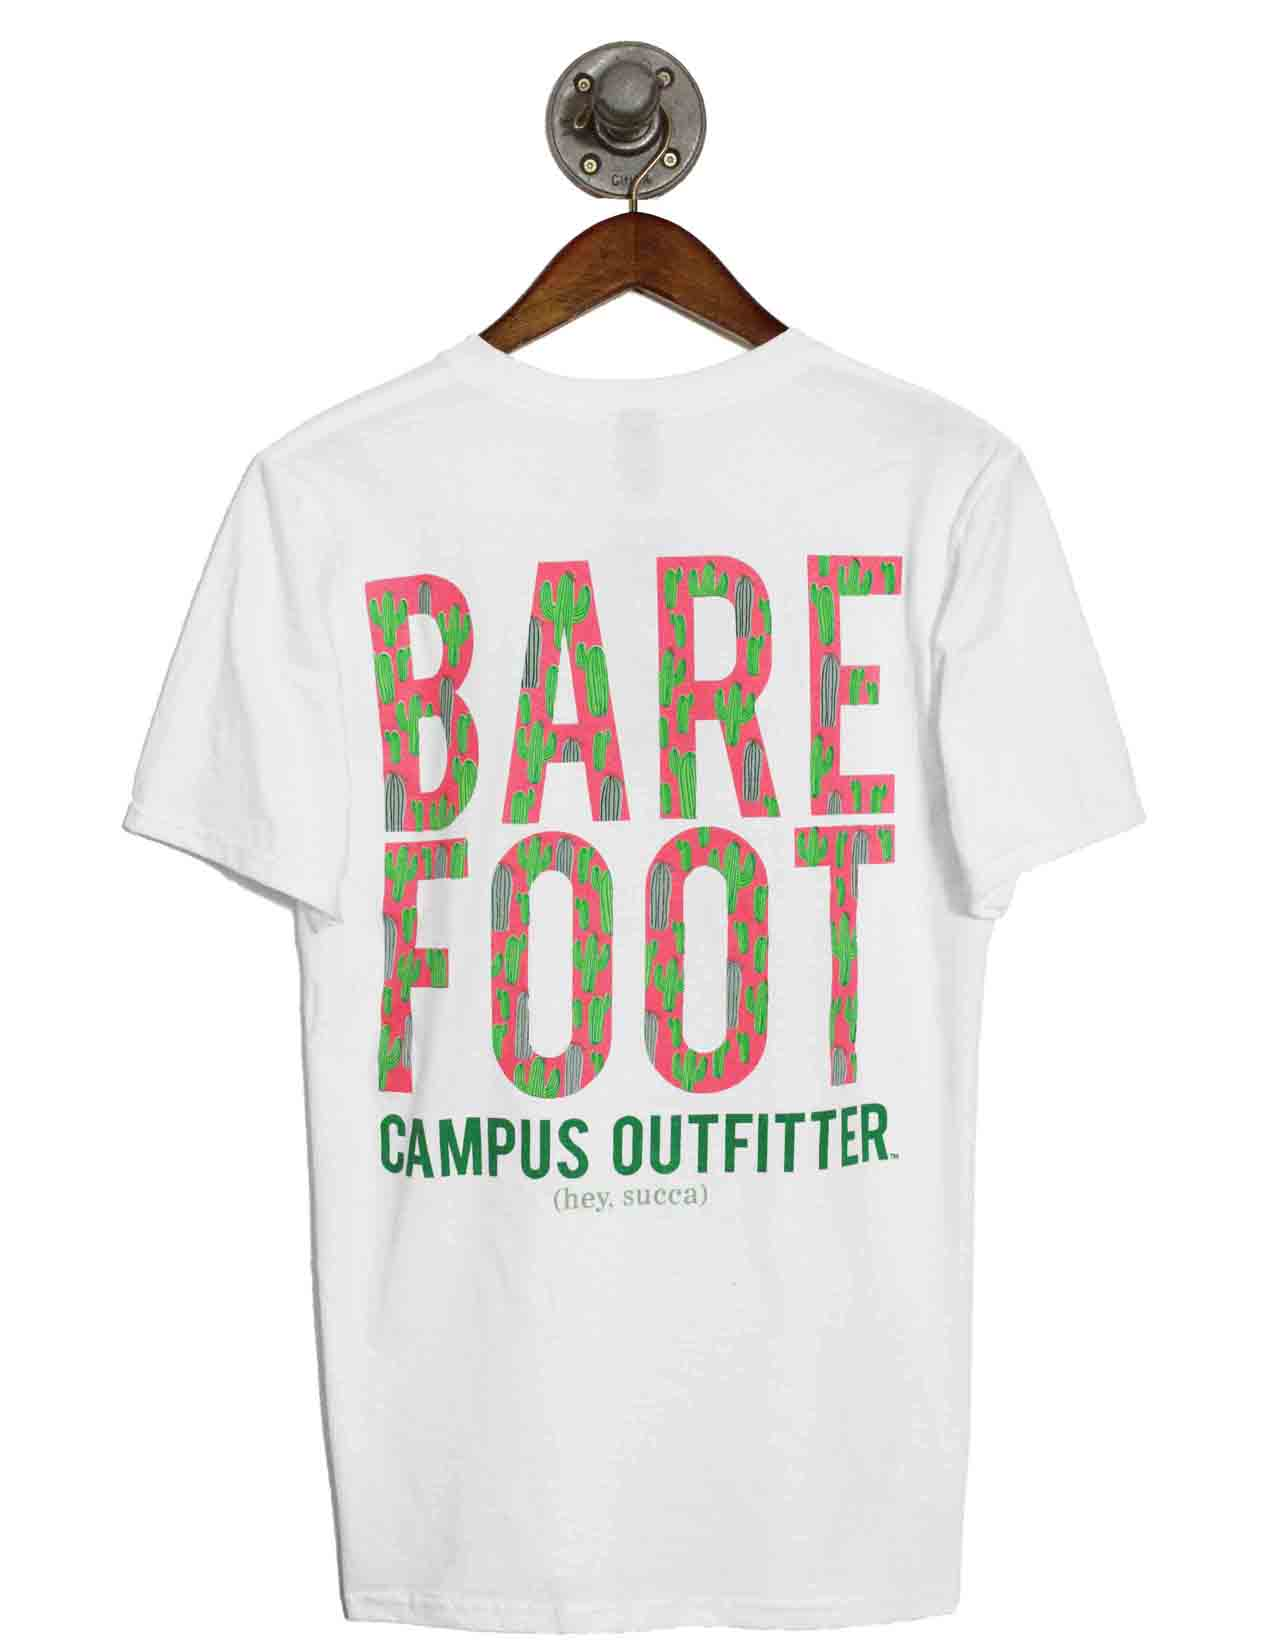 2b4b89a1af547 BFCO Cactus Succa – Barefoot Campus Outfitters